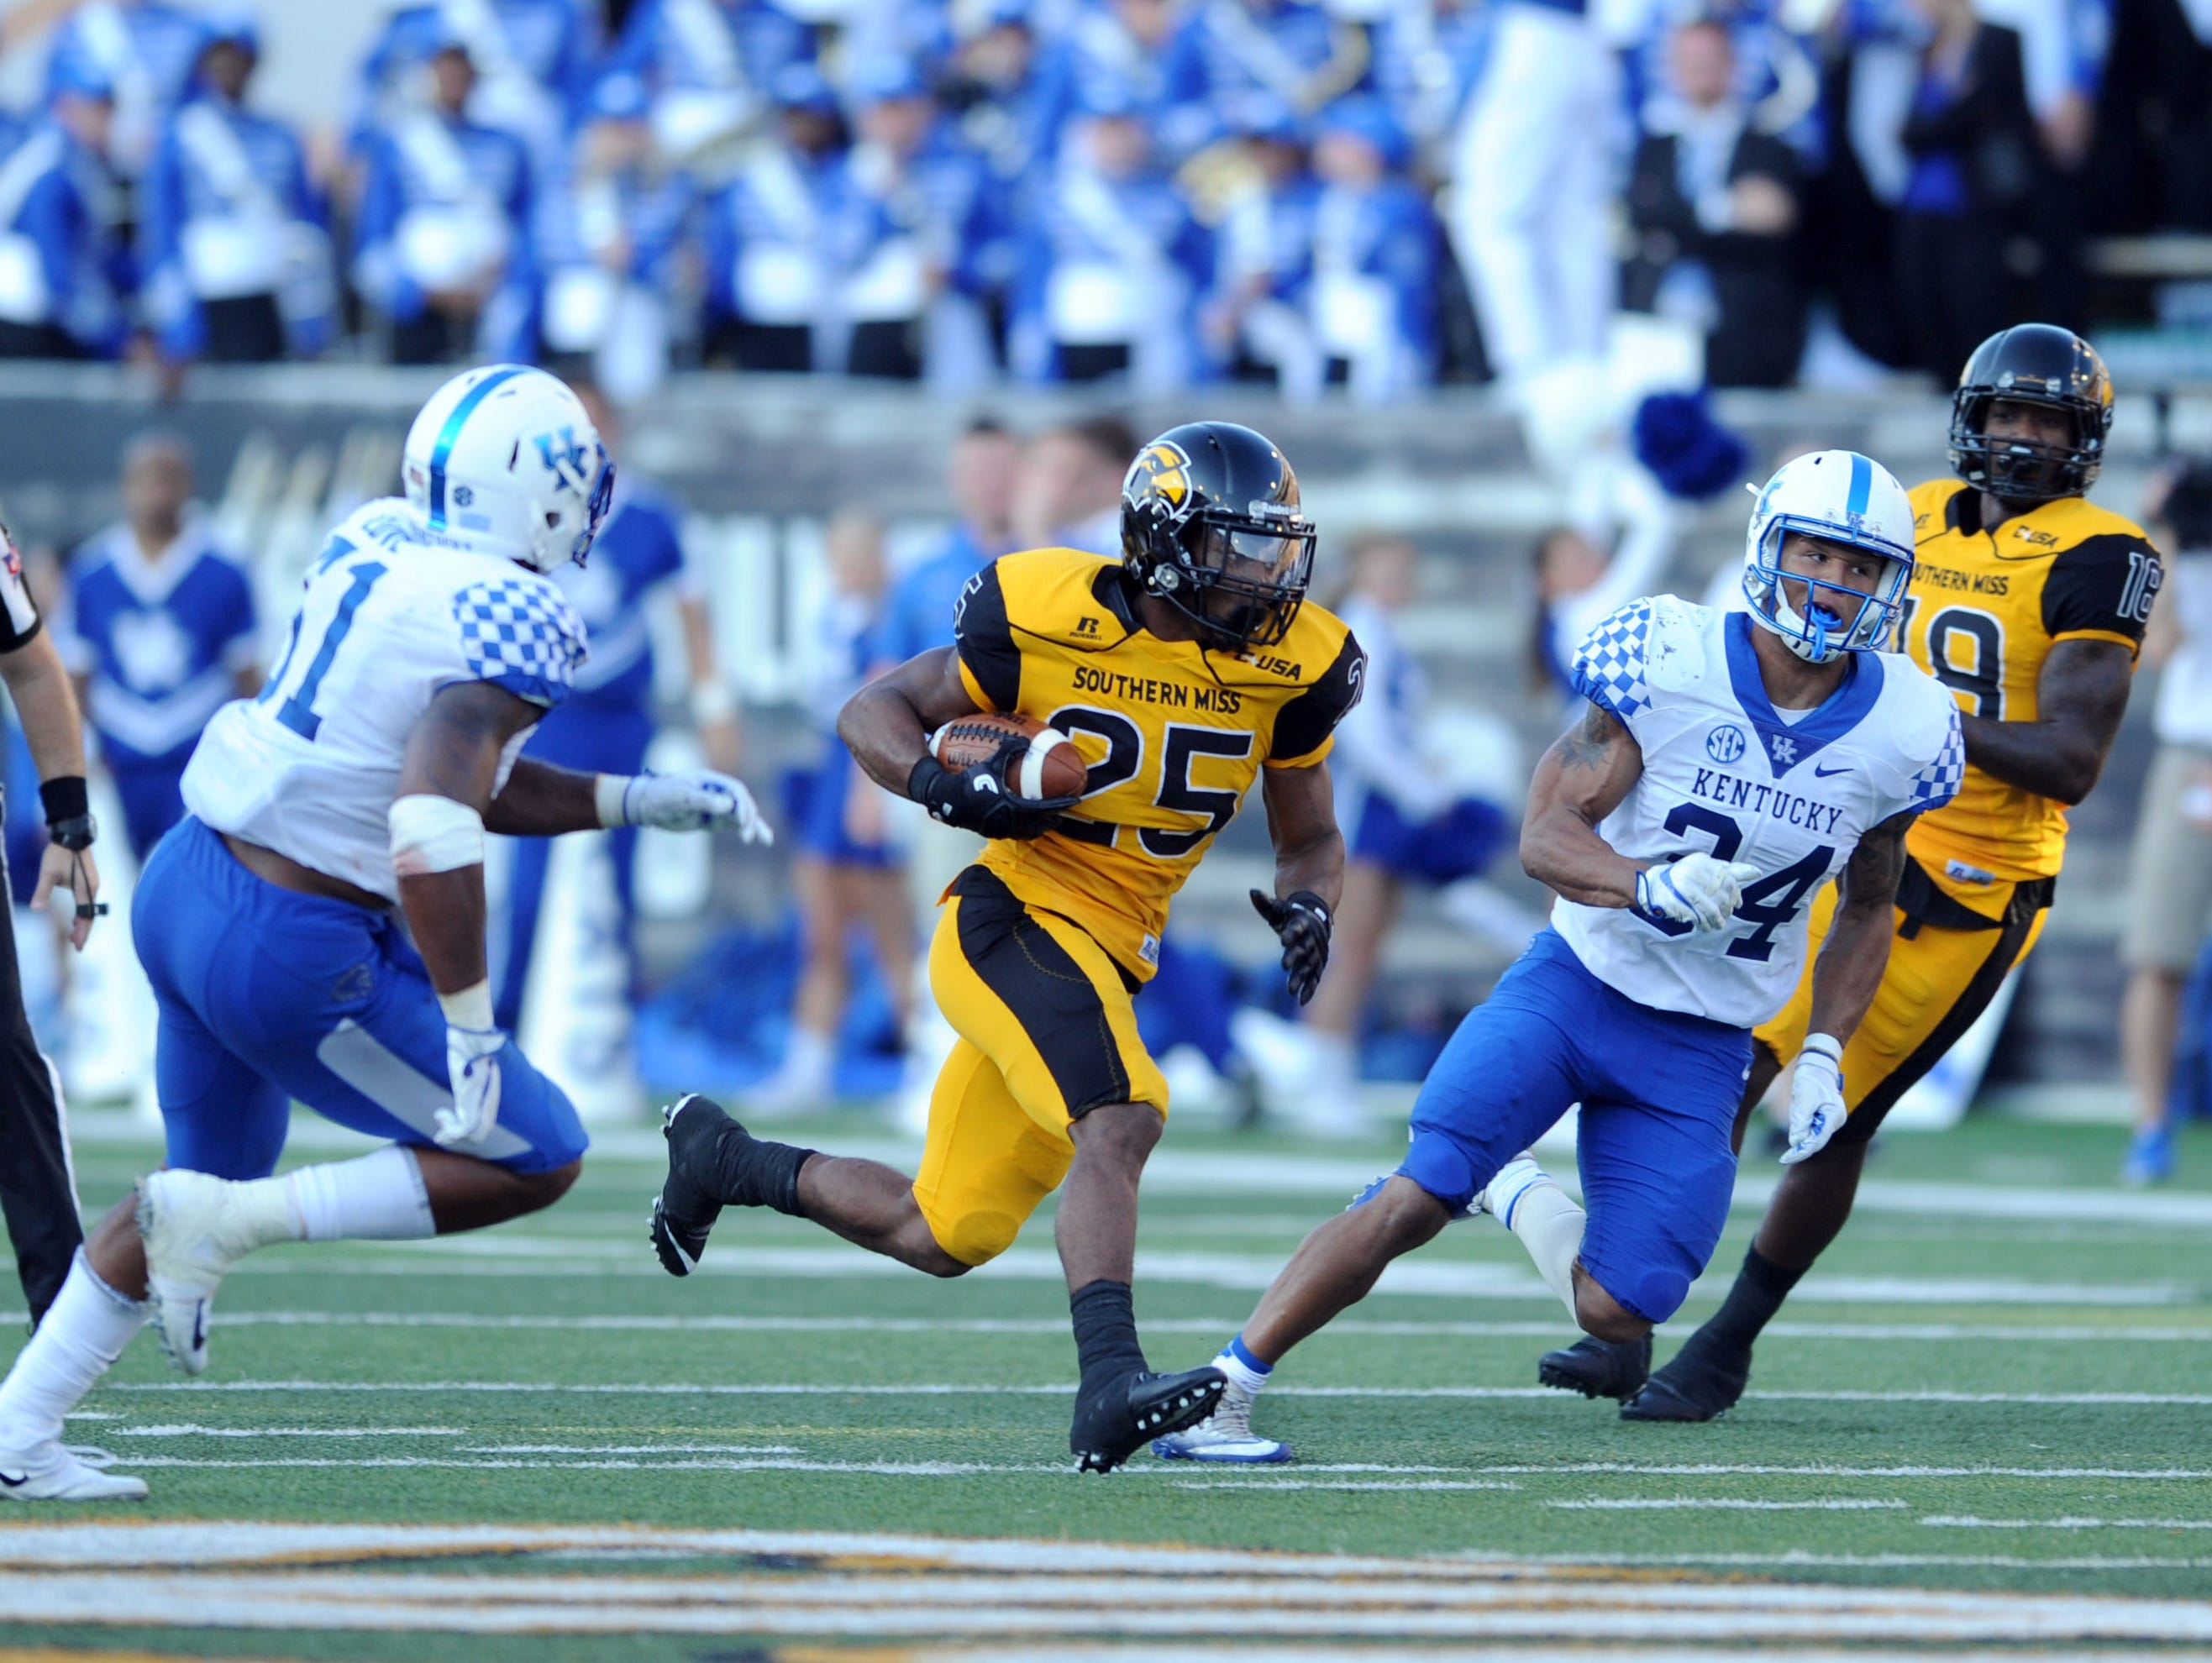 Southern Miss running back Ito Smith carries the ball in a game against Kentucky at M.M. Roberts Stadium on Saturday.